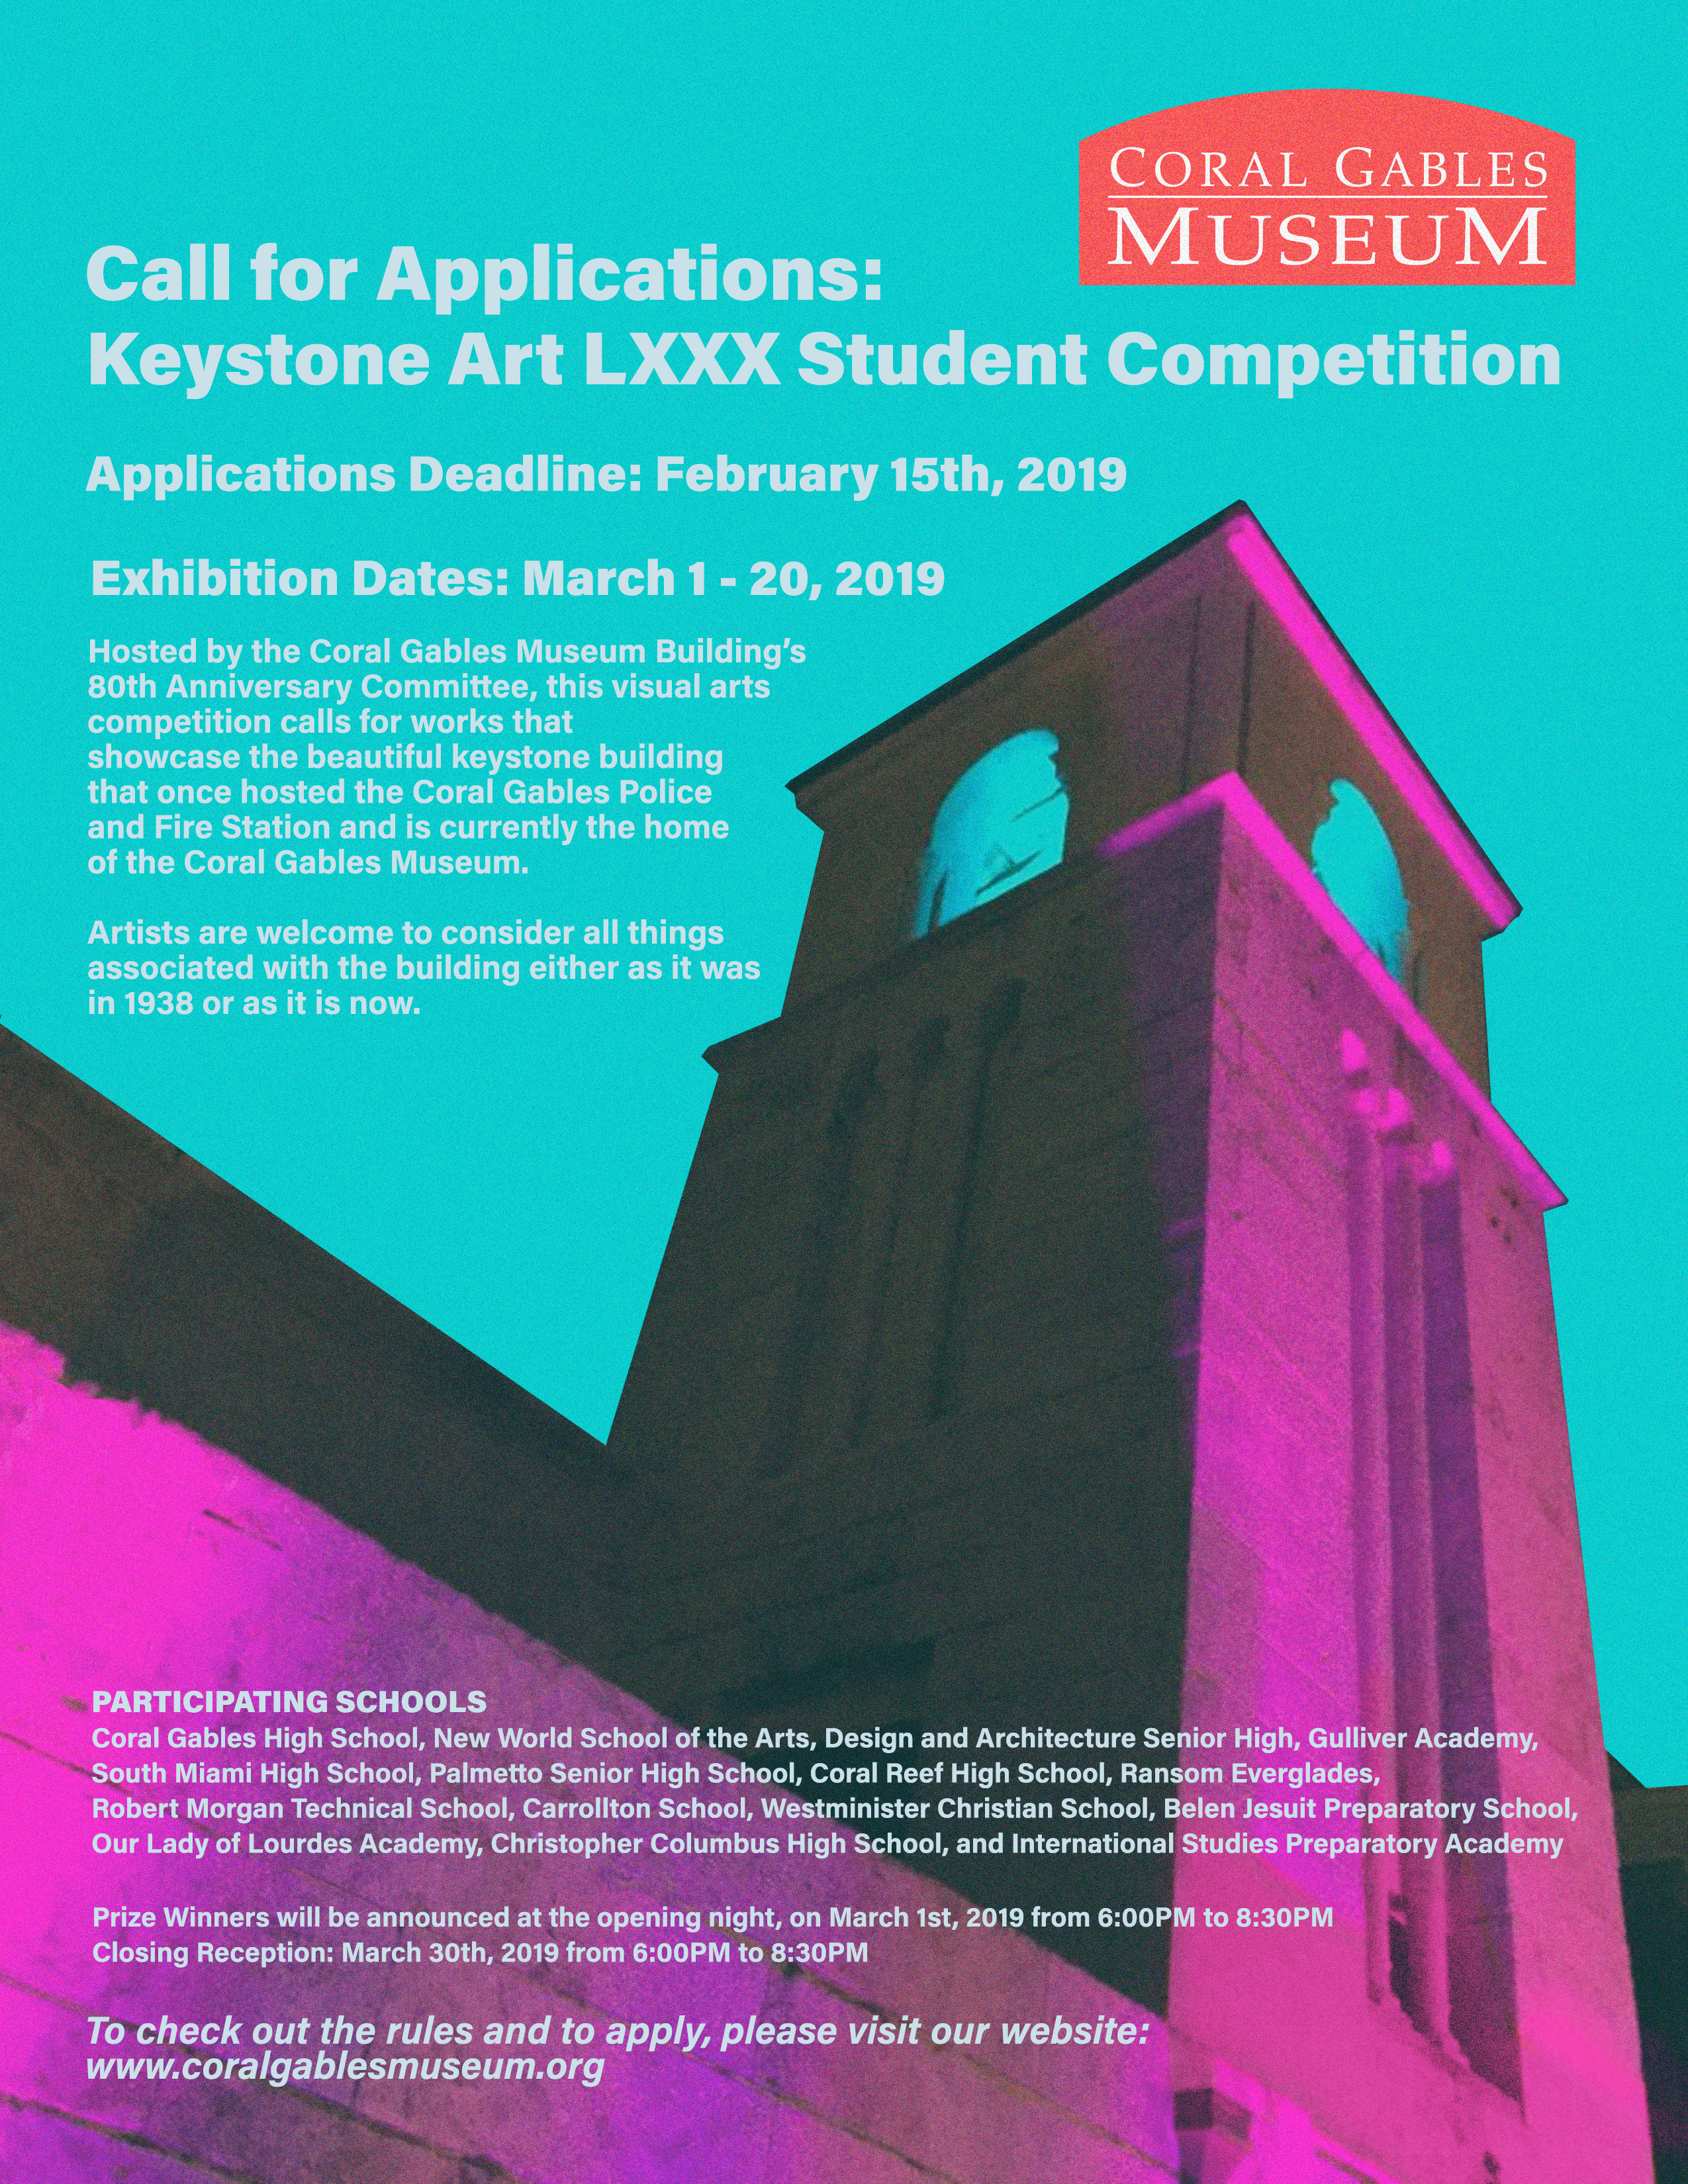 Keystone Art Student Competition - Coral Gables Museum